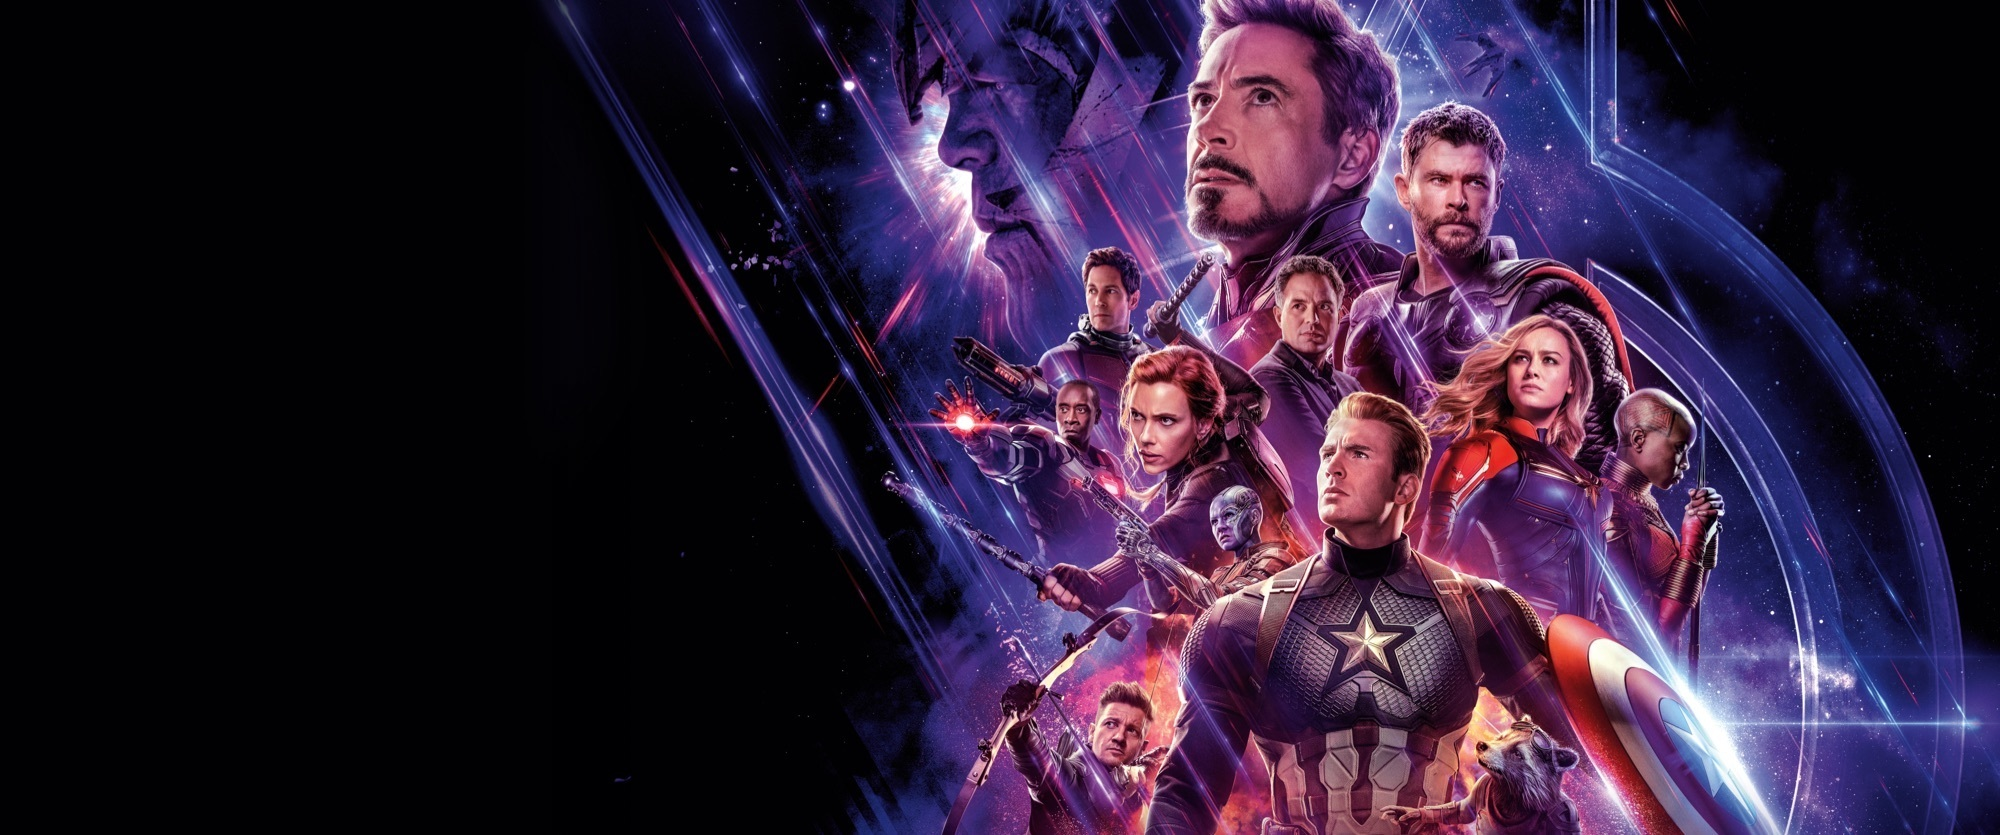 Avengers: Endgame Showcase Homepage